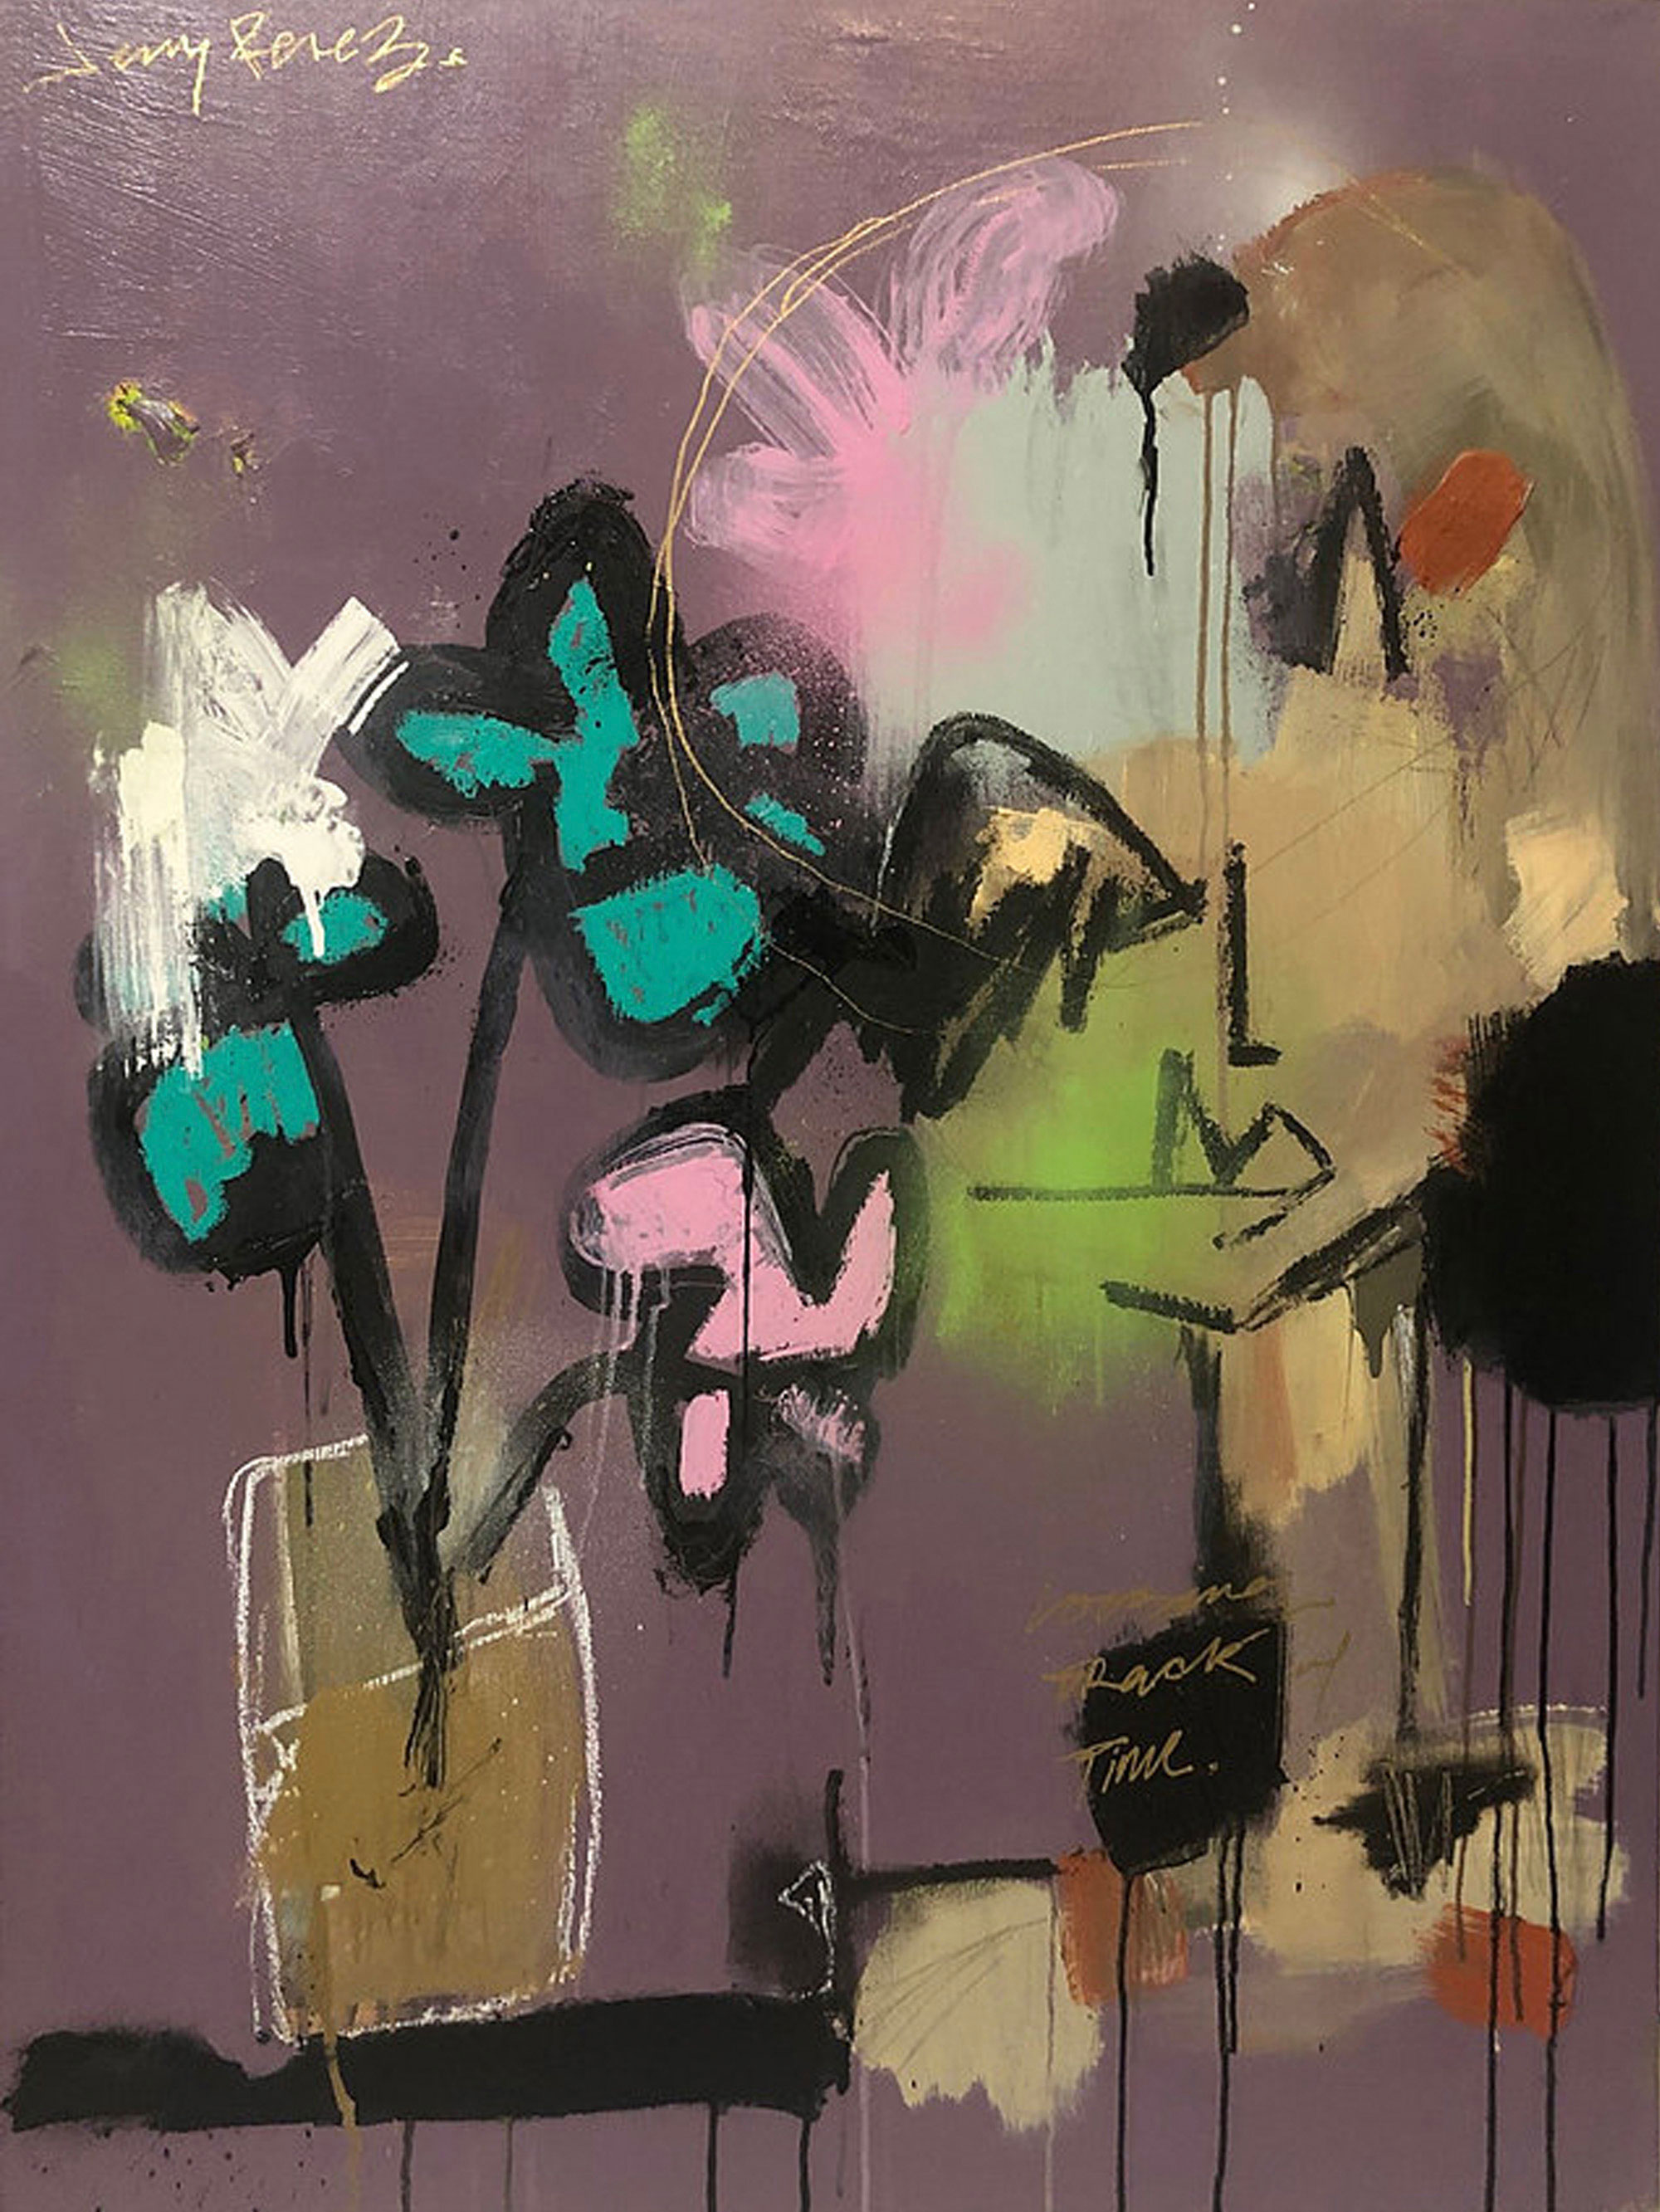 "Catching Feelings (Losing Track of Time)  - 30"" x 40""  Acrylic, aerosol and oil stick on canvas, 2019"